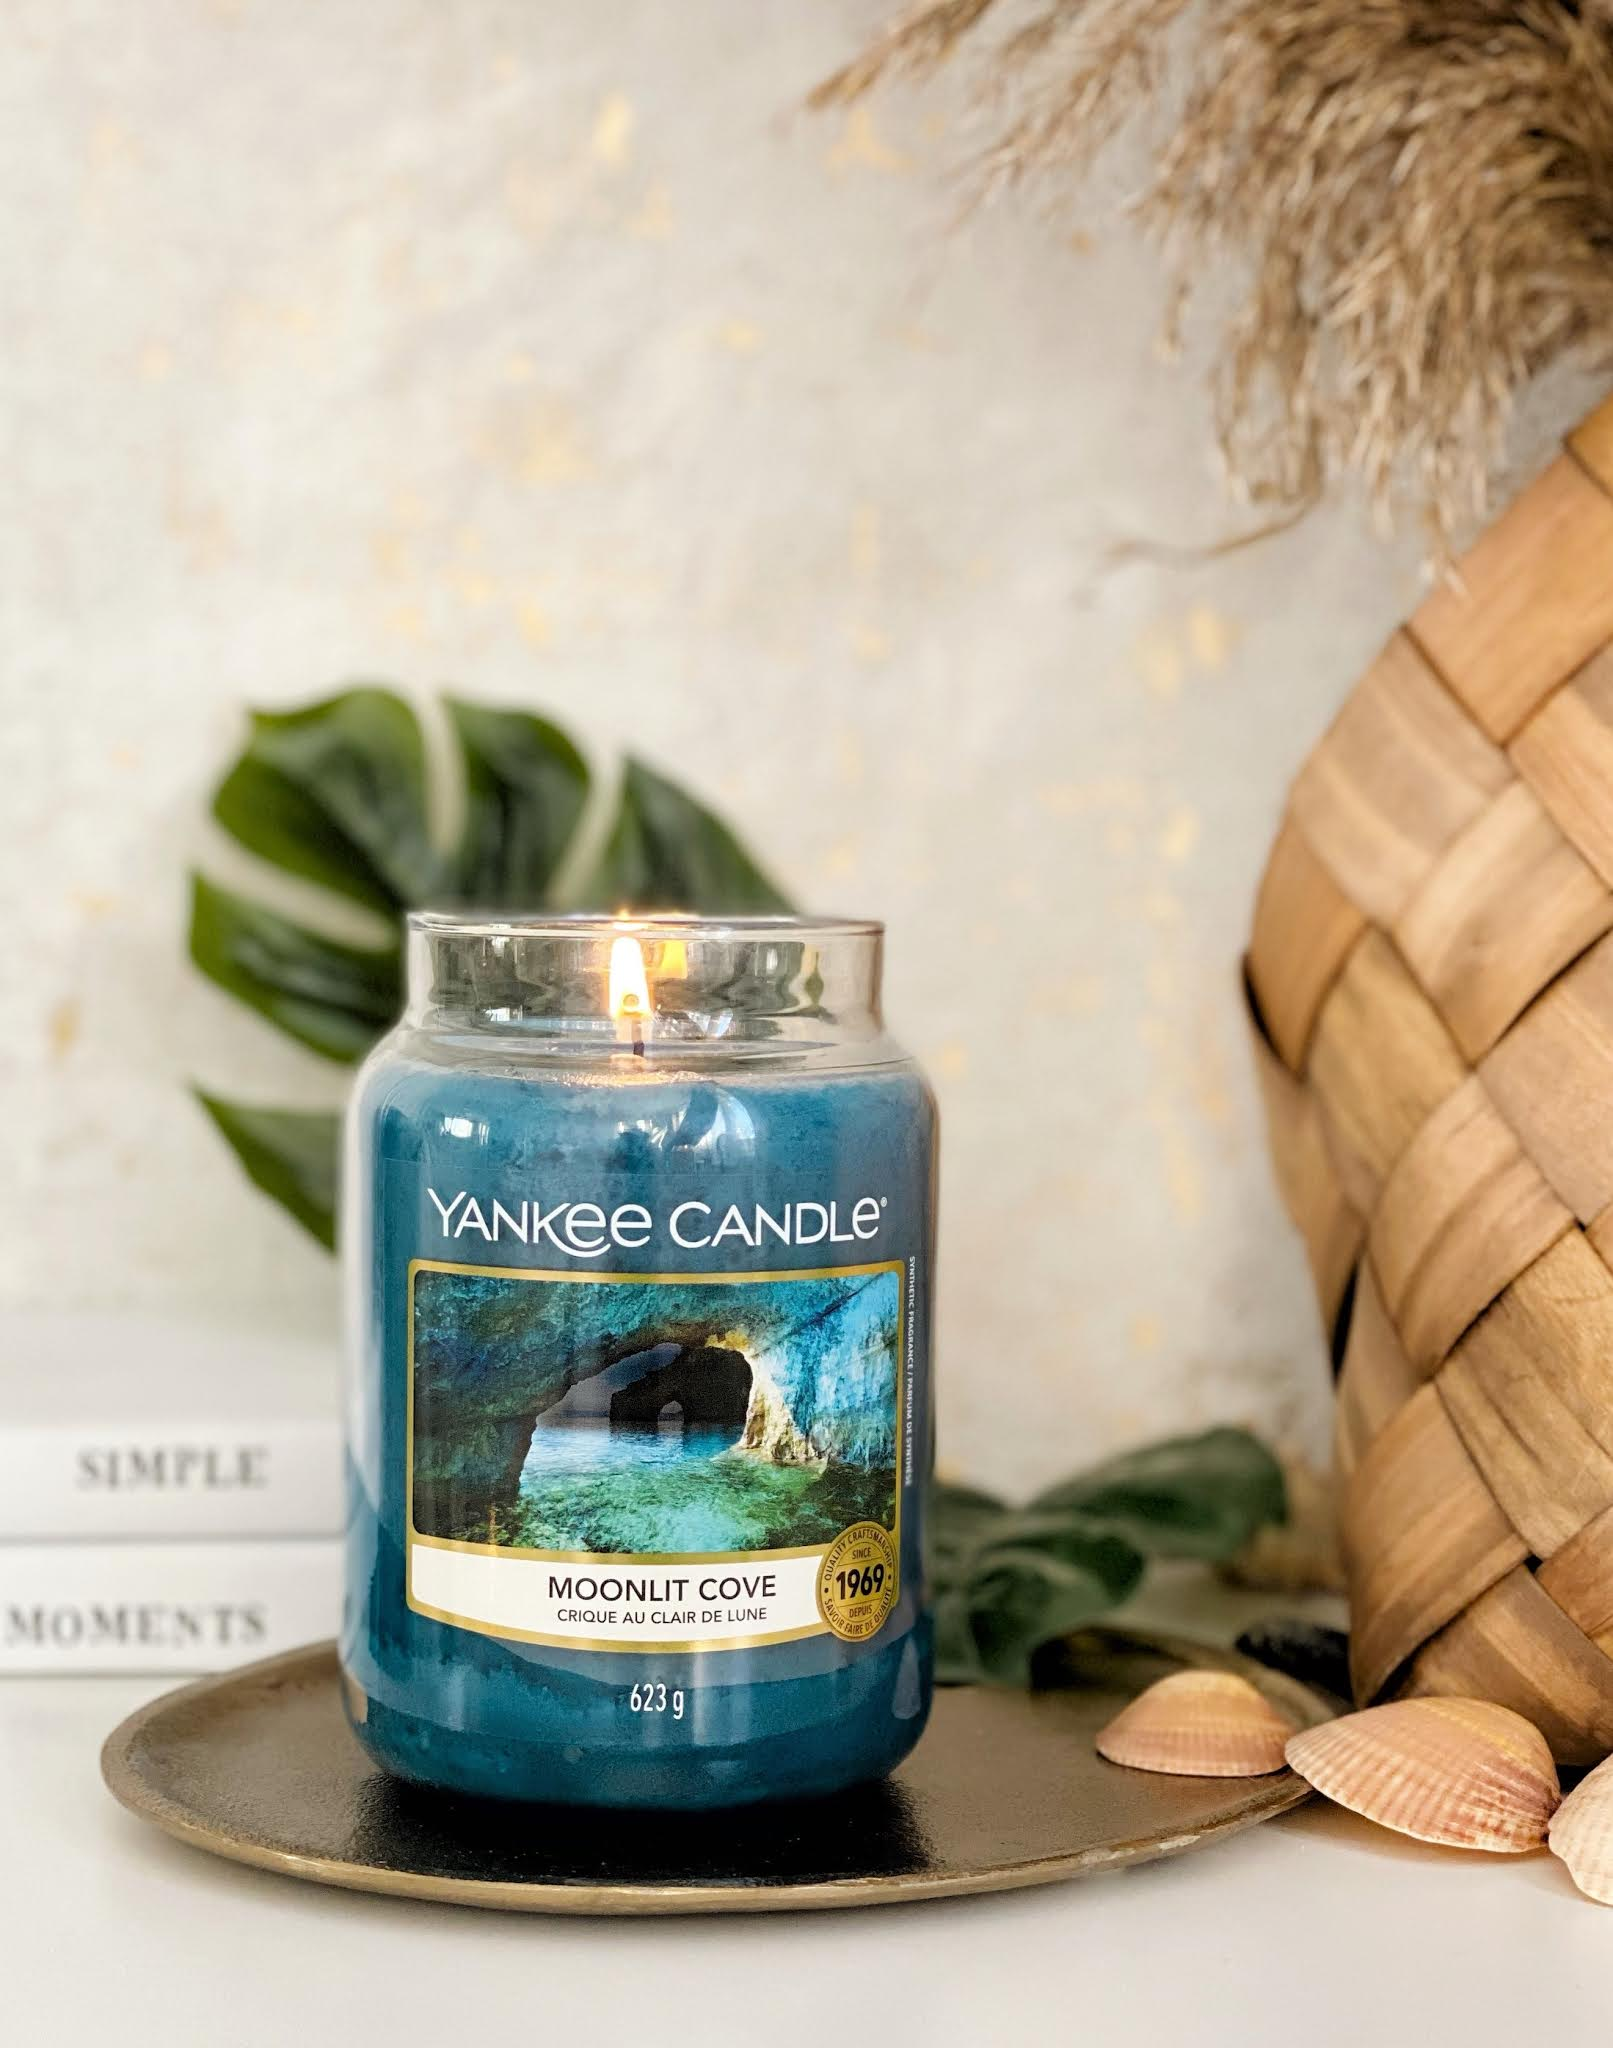 Moonlit-Cove-Yankee-Candle